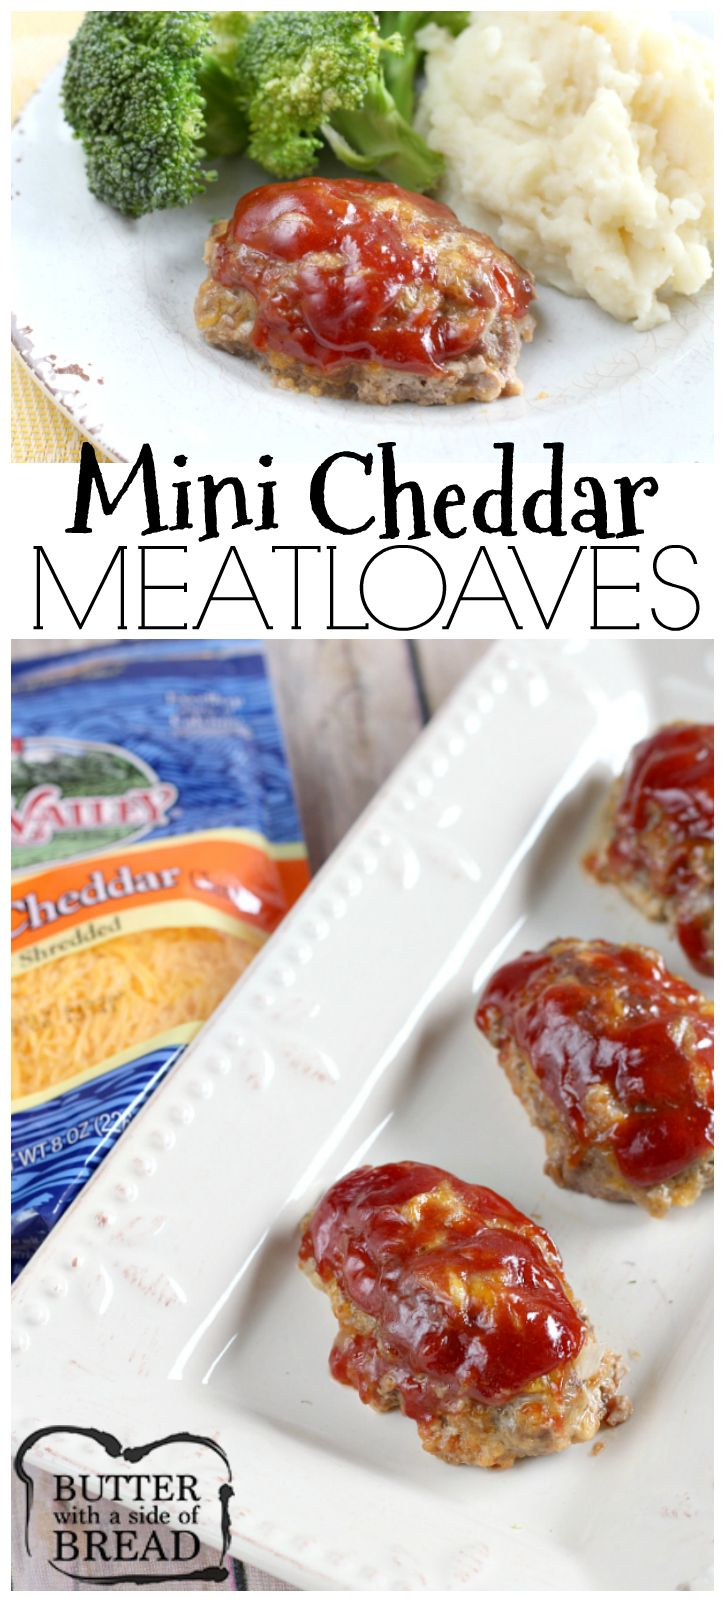 Easy dinner idea- Mini Cheddar Meatloaves! Trust me, adding cheese makes a big difference- YUM. Easy recipe from Butter With a Side of Bread AD